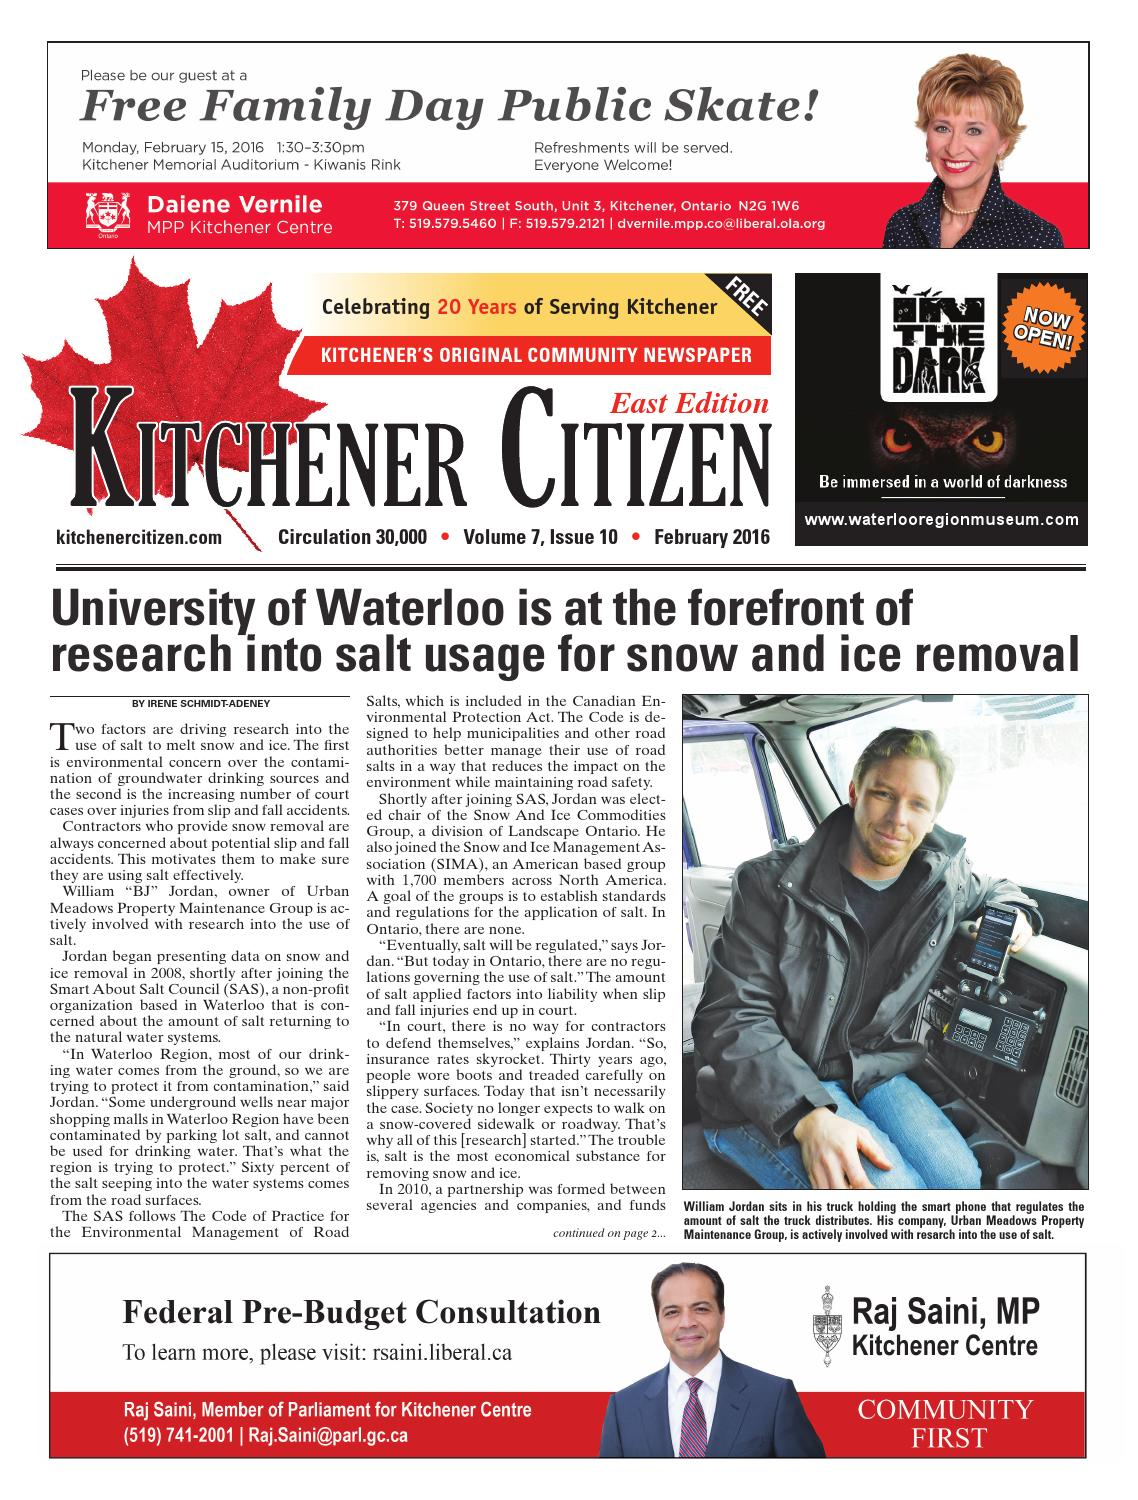 Kitchener Citizen - East Edition - February 2016 by Kitchener ...